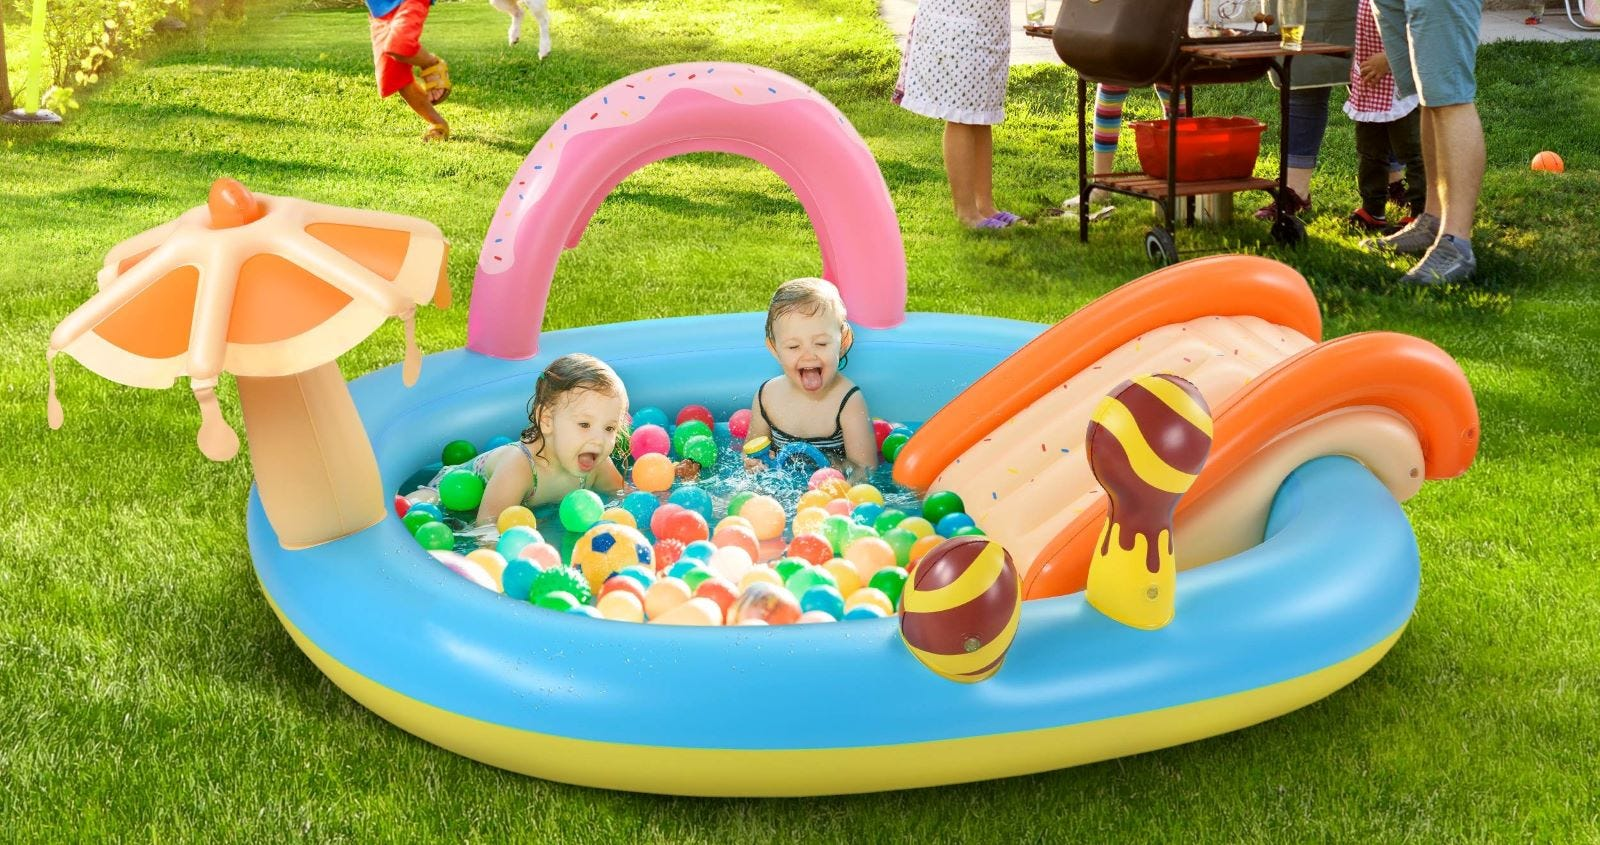 Two children in the Hesung Inflatable Play Set